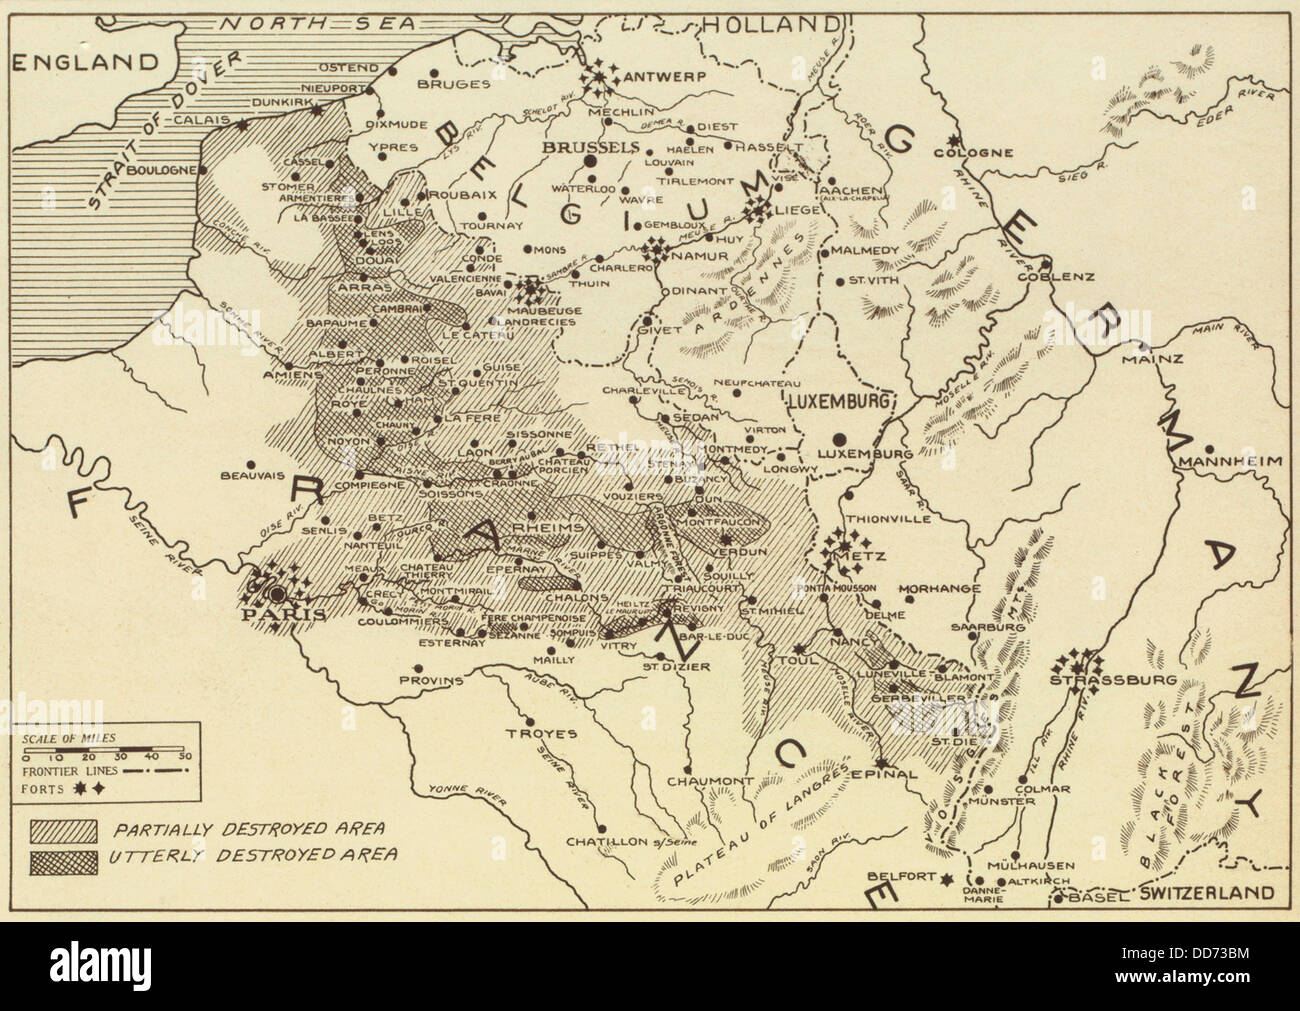 Post World War 1 map of the ruined regions of France in 1919. (BSLOC ...